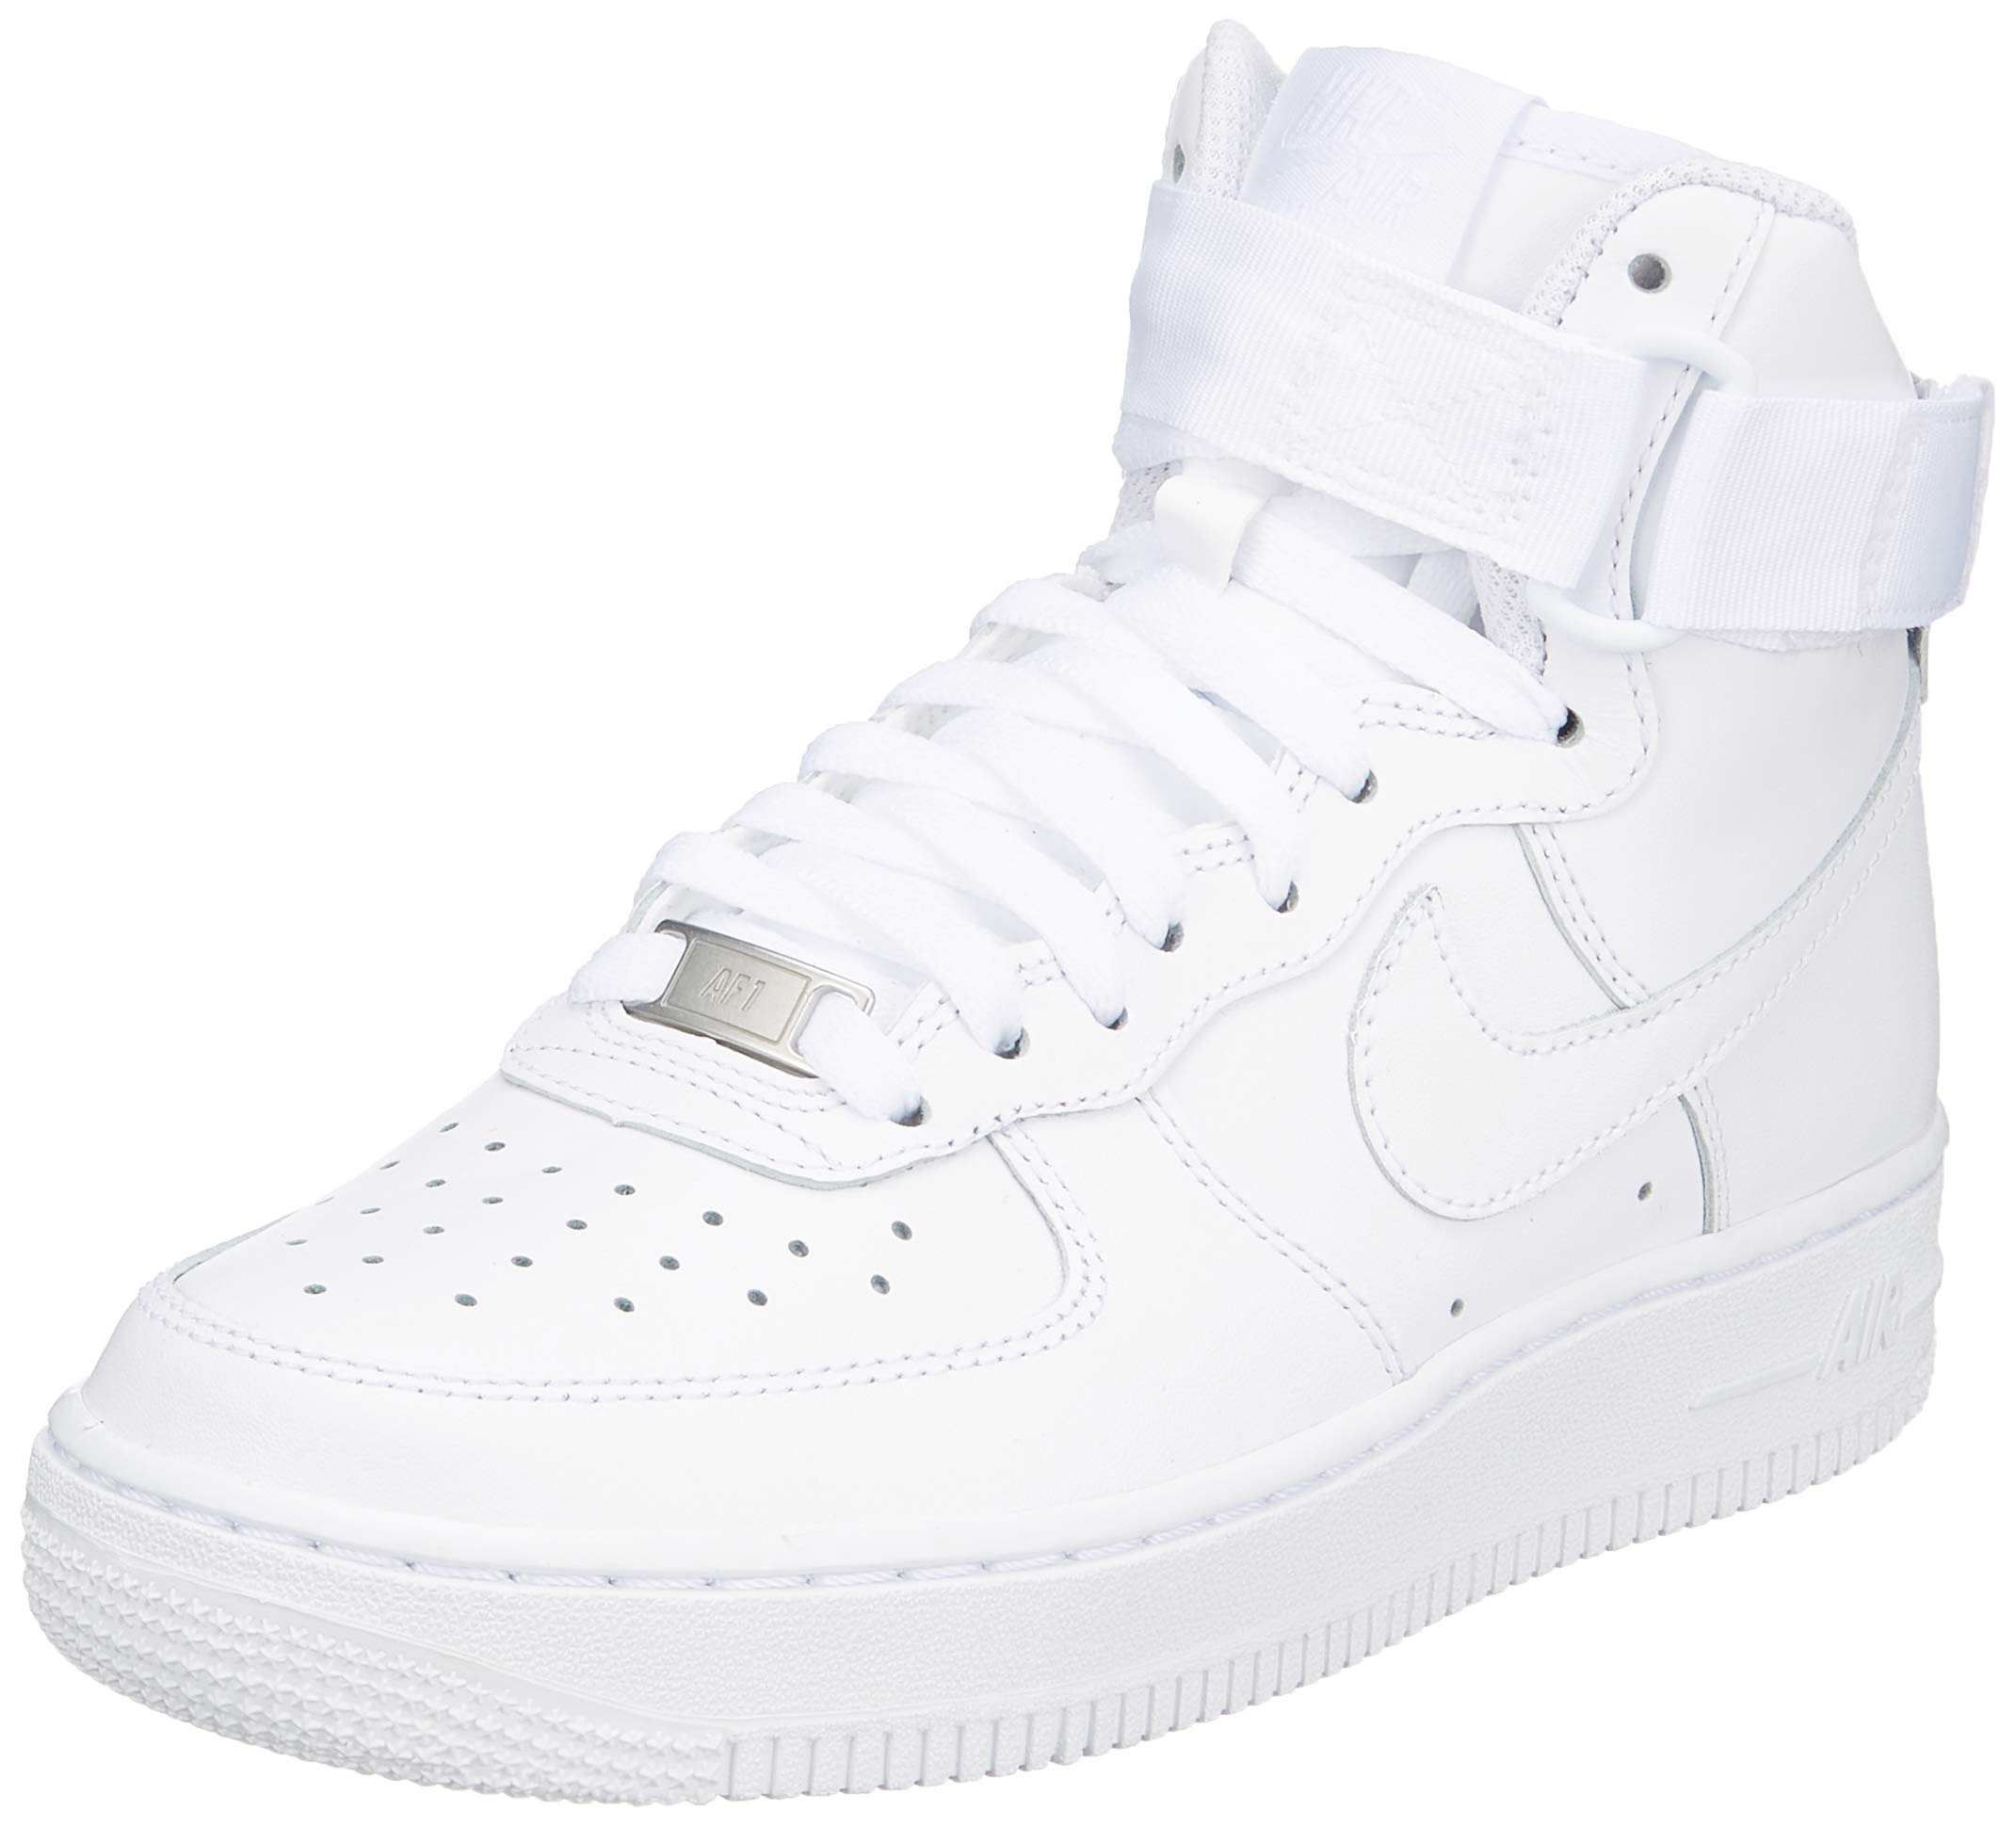 Nike WMNS Air Force 1 High Womens Sneakers 334031-105, White/White-White, Size US 8.5 by Nike